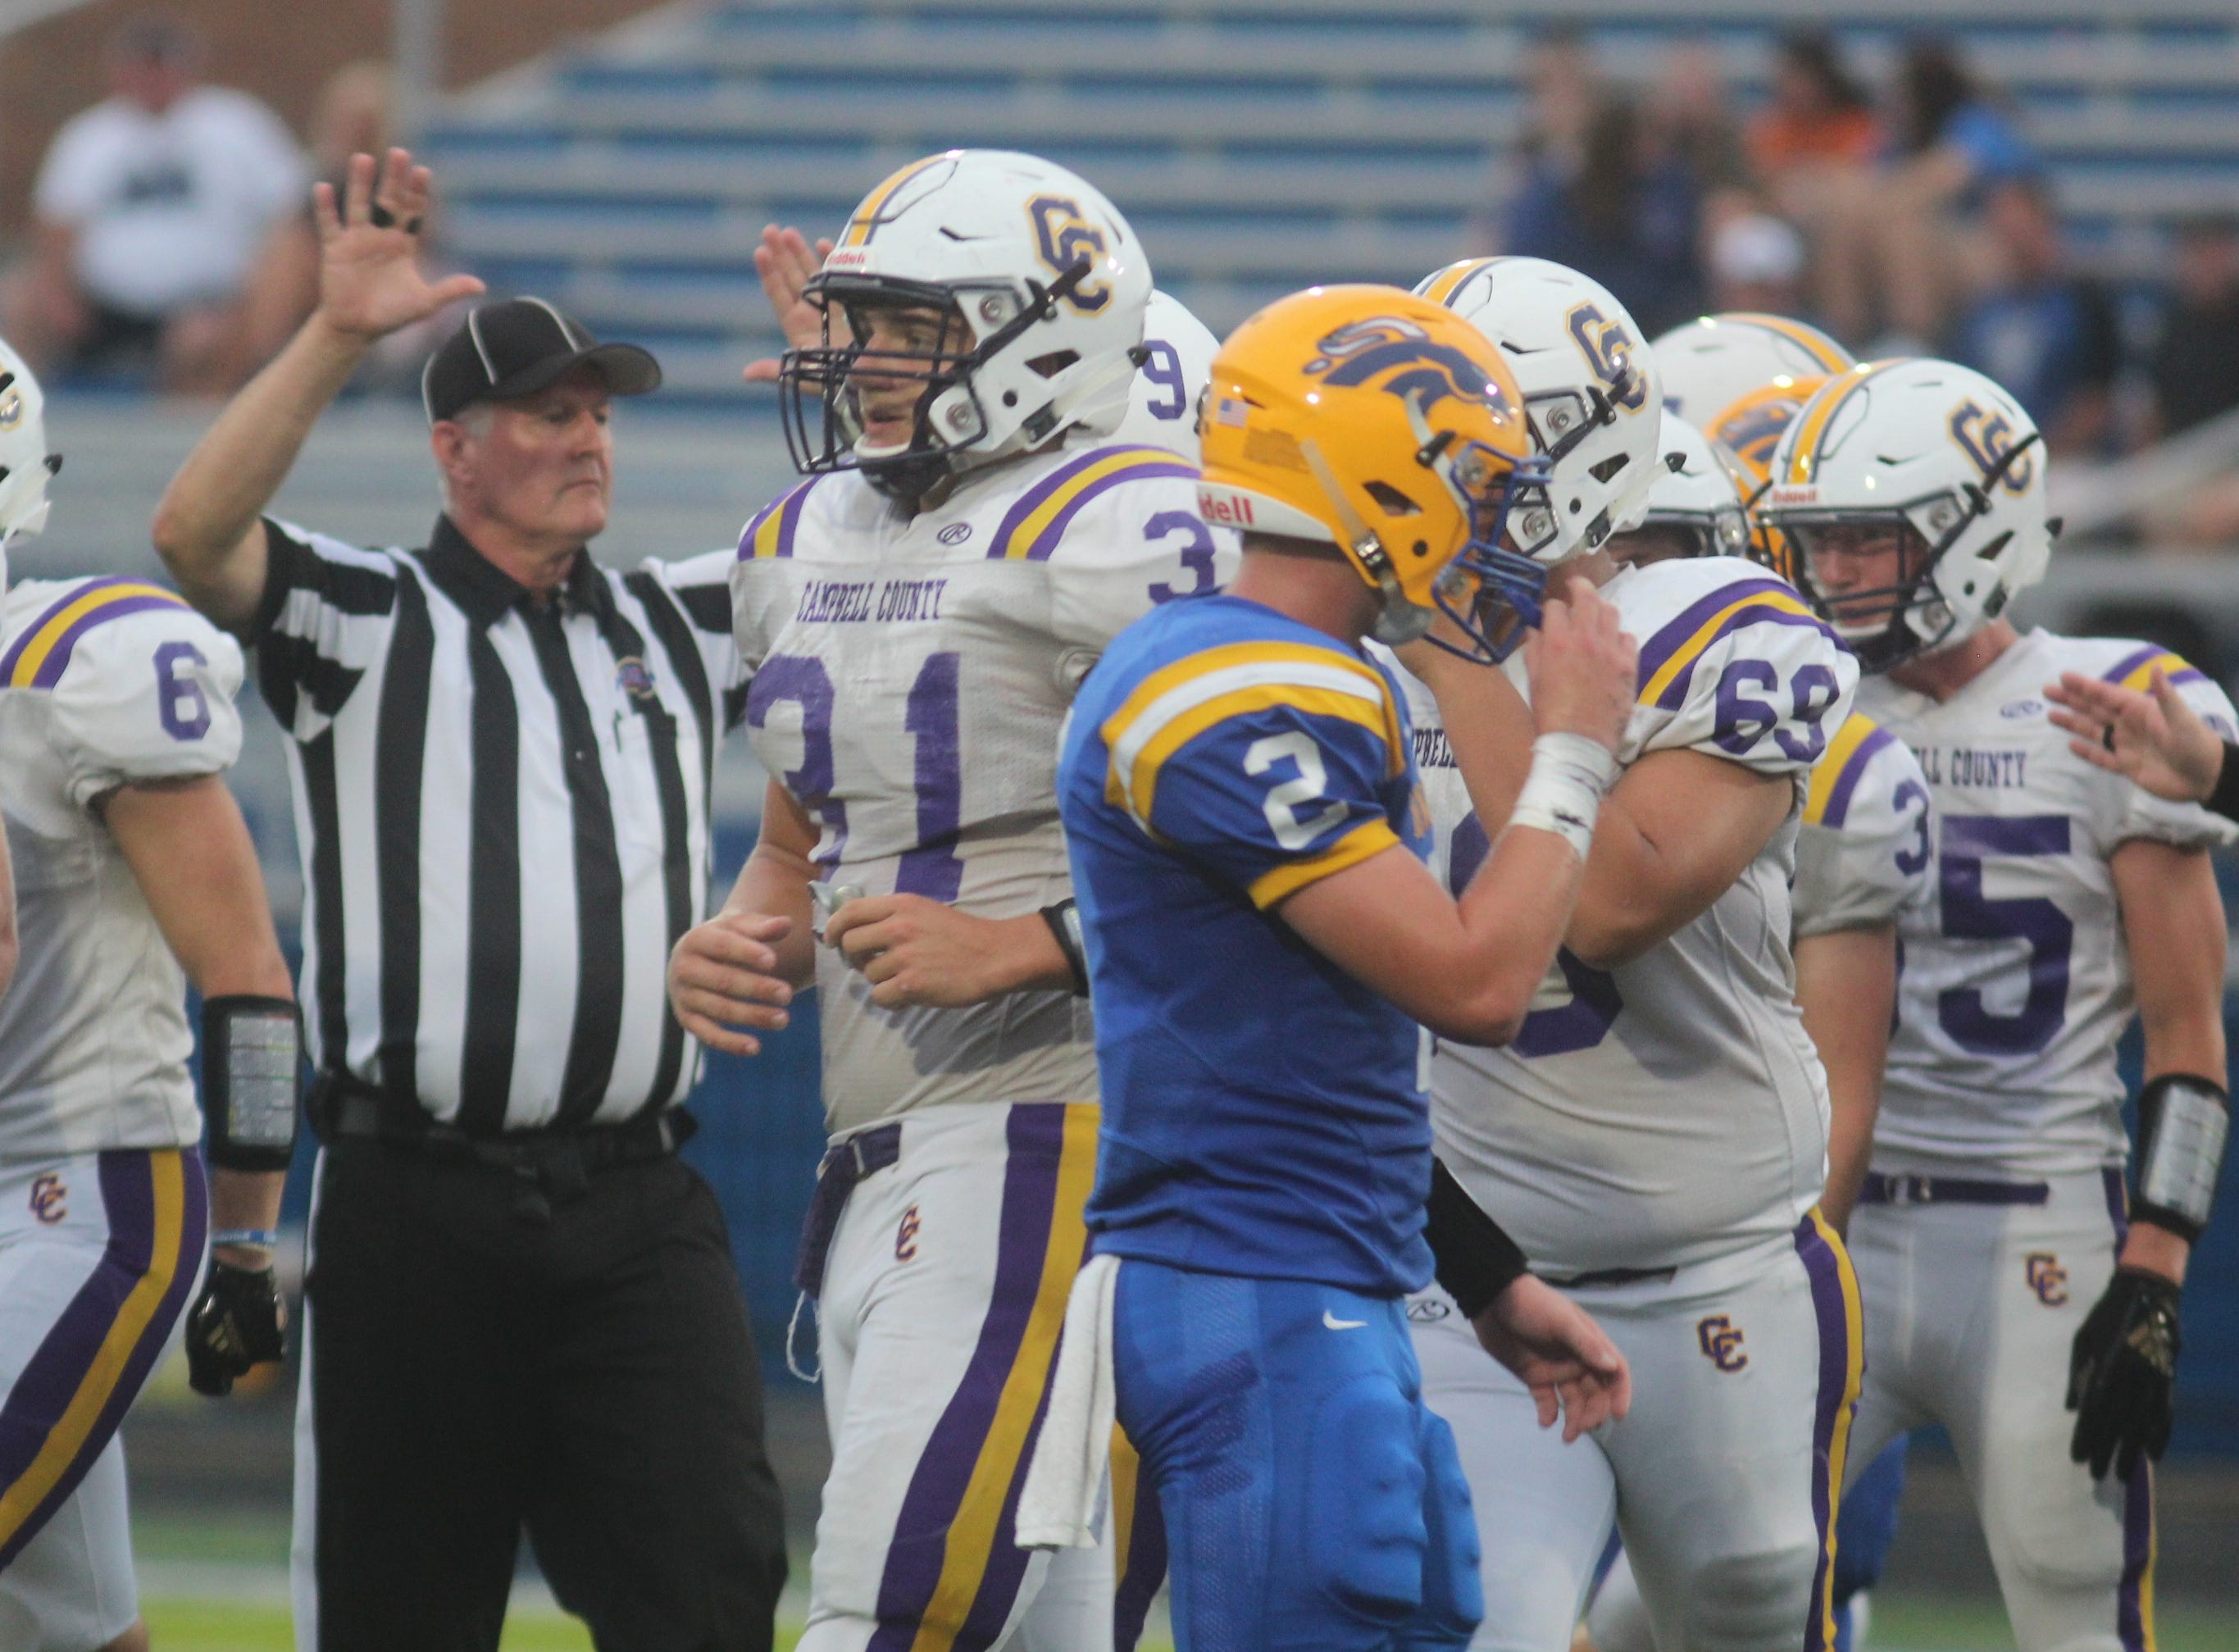 Campbell County senior Tanner Lawrence, 31, as Campbell County and Newport Central Catholic played a football game August 31, 2018 at Covington Catholic High School. Campbell County led 24-0 at halftime when the game was suspended due to lightning.